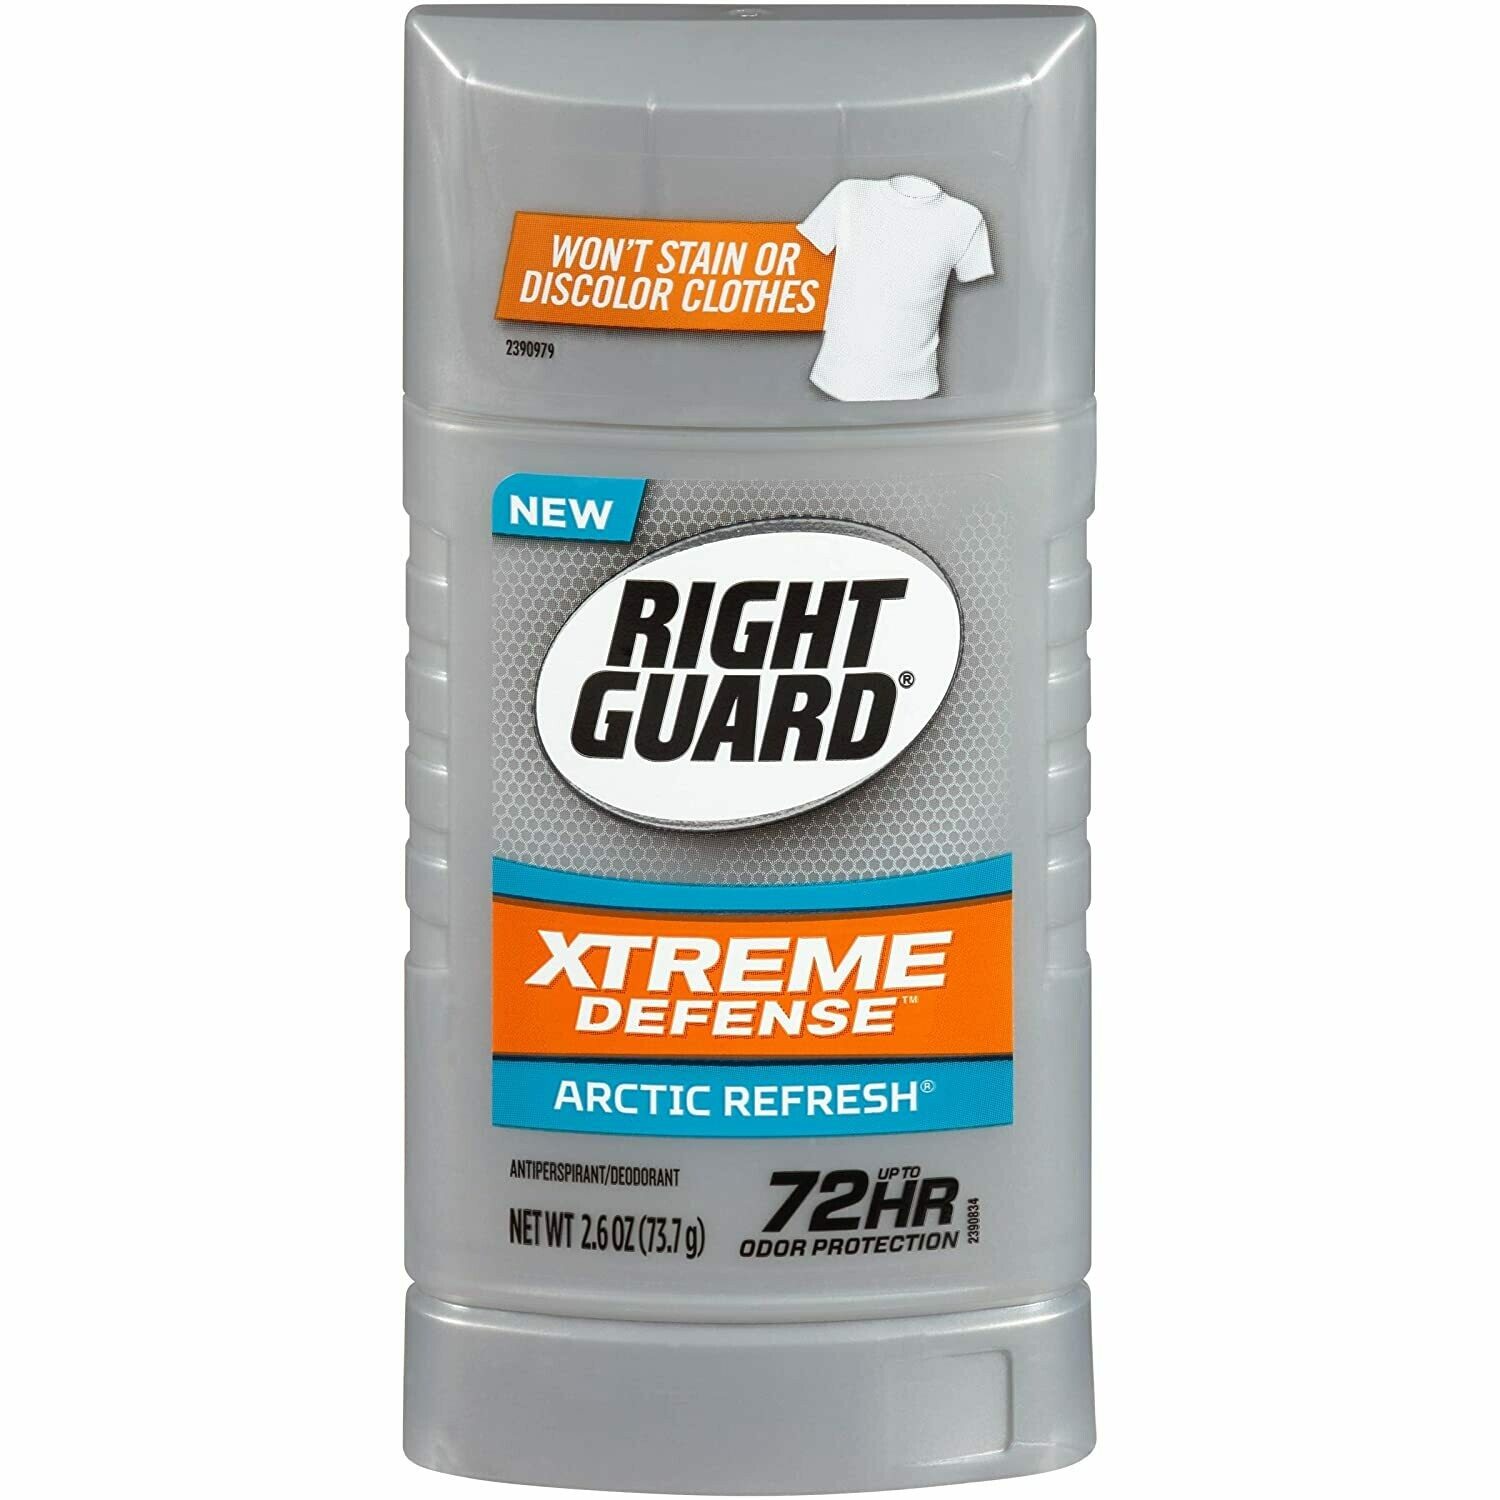 Right Guard Antiperspirant Deodorant, Arctic Refresh, 2.6 Ounce